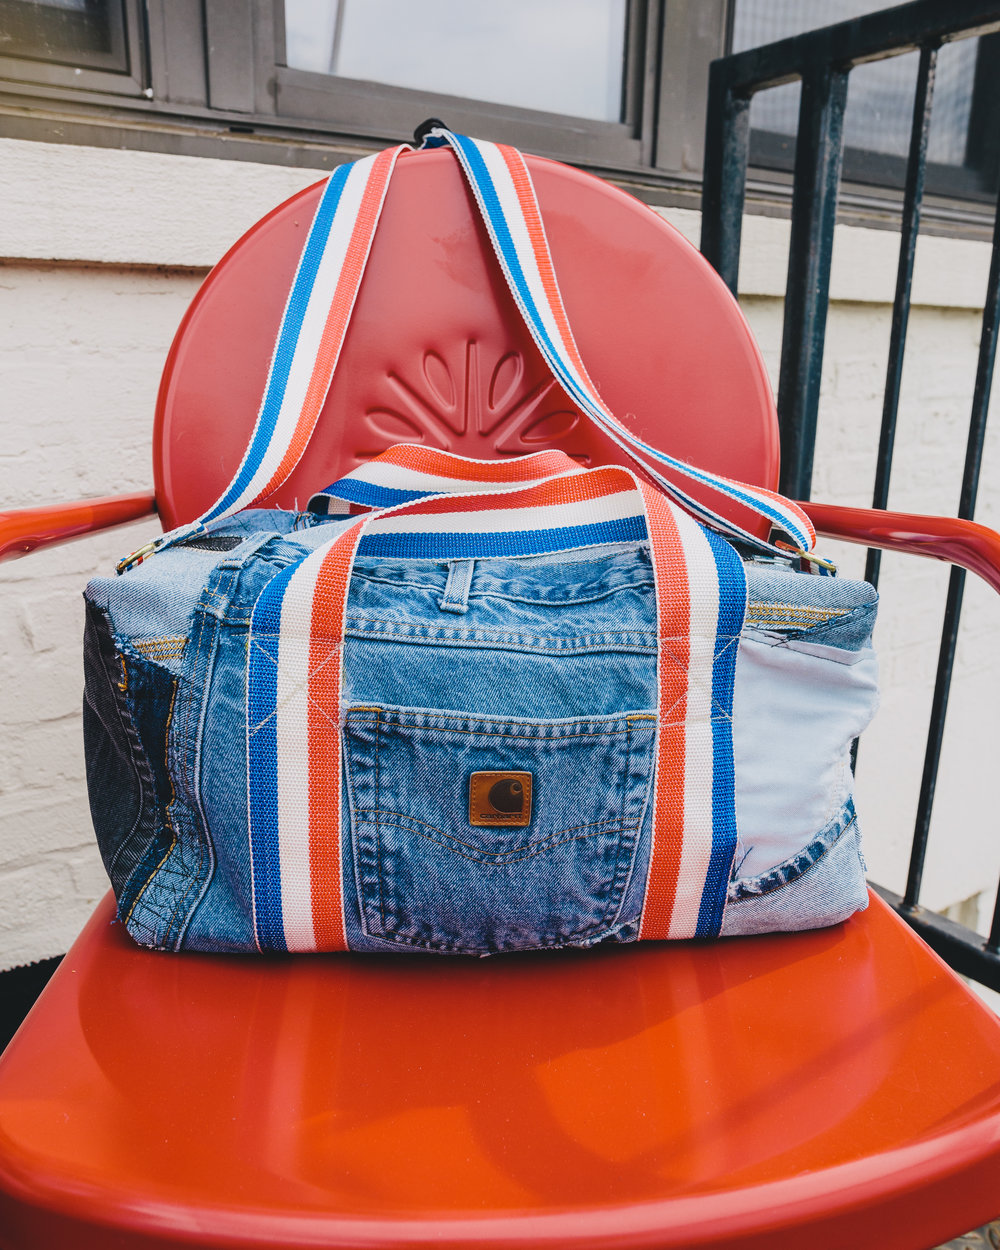 USA Denim Duffel - Made from vintage pants such as Carhartt work jeans, with red, white, and blue webbing.